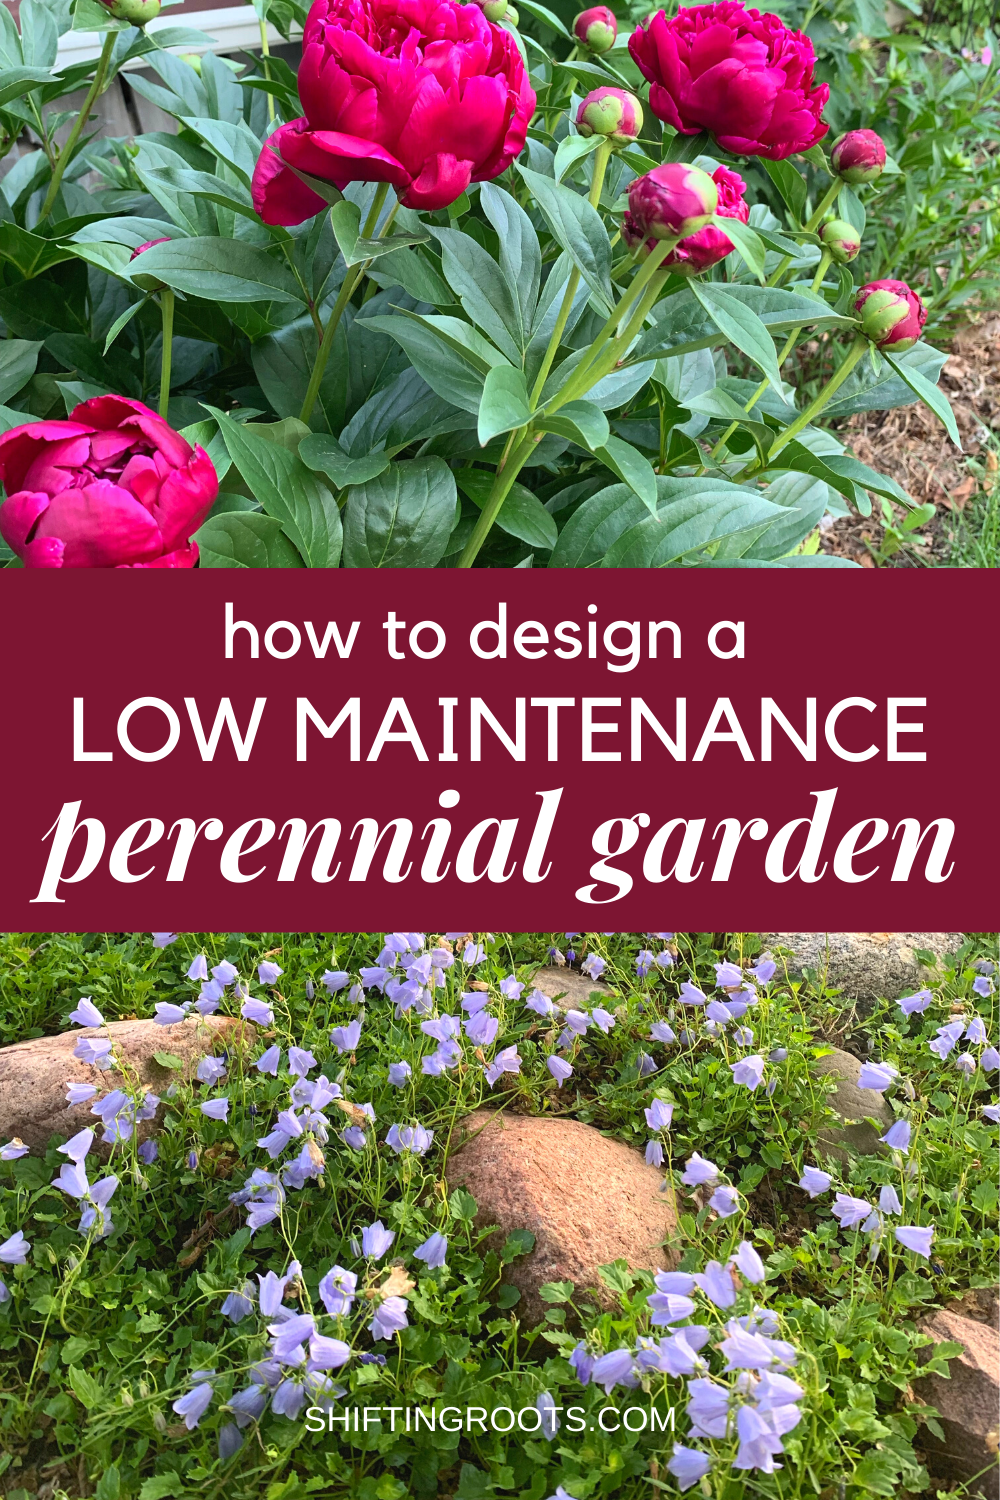 How To Design A Low Maintenance Perennial Flower Garden In 2020 Garden Flowers Perennials Flowers Perennials Best Perennials For Shade